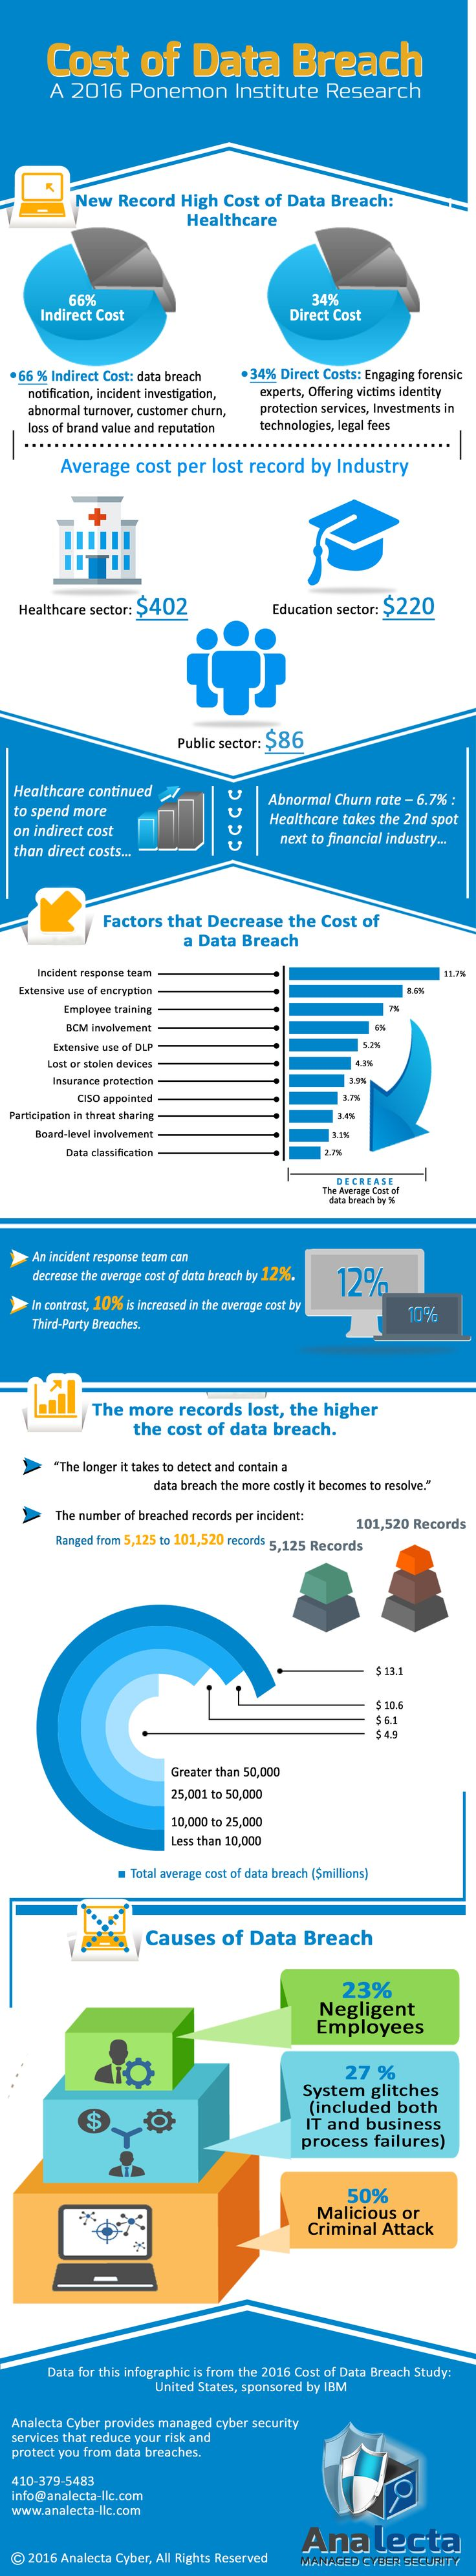 "New record high cost of data breach in healthcare: $402 per compromised record.  66% is accounted for indirect cost while 34% for the direct costs.    #healthcare continued to spend more on indirect costs than direct costs.   Having an incidence response team in the organization decrease the average cost of data breach by 12%.    ""The more records lost, the higher the cost of data breach.""  https://www.analecta-llc.com #cybersecurity #databreaches #healthrecords #ITSecurity #HealthIT #EHR"